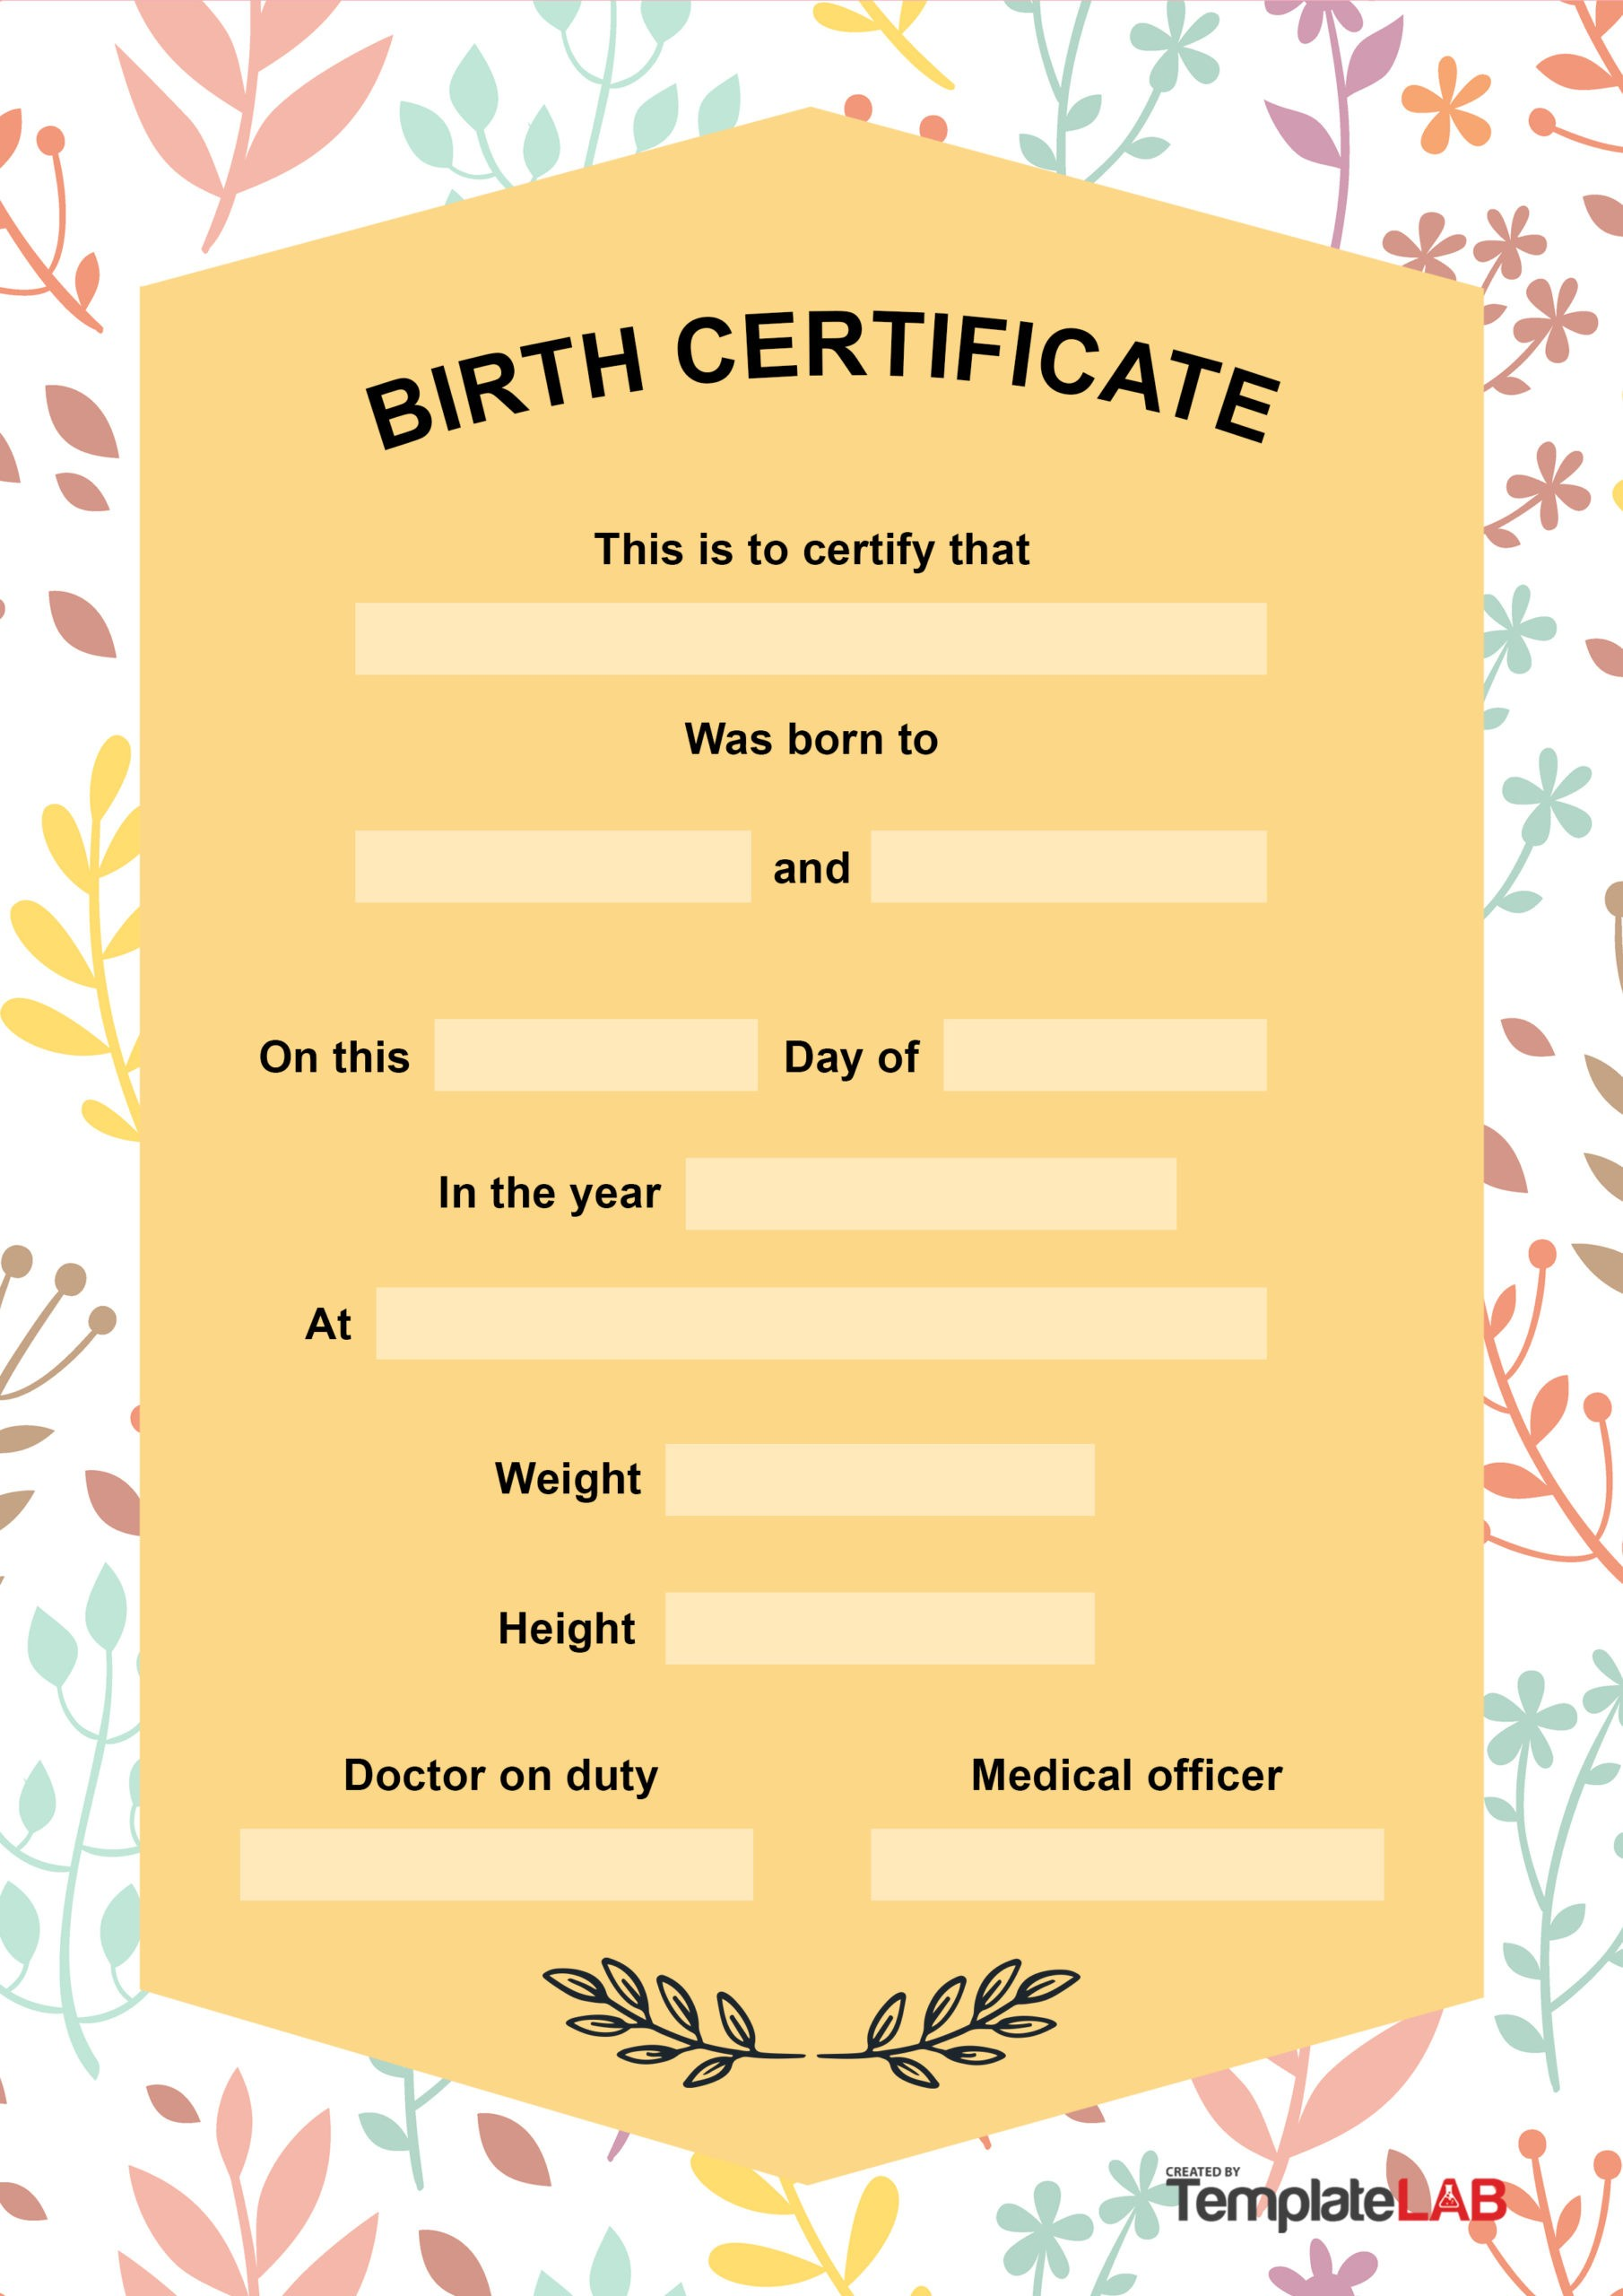 Real Birth Certificate Template from templatelab.com